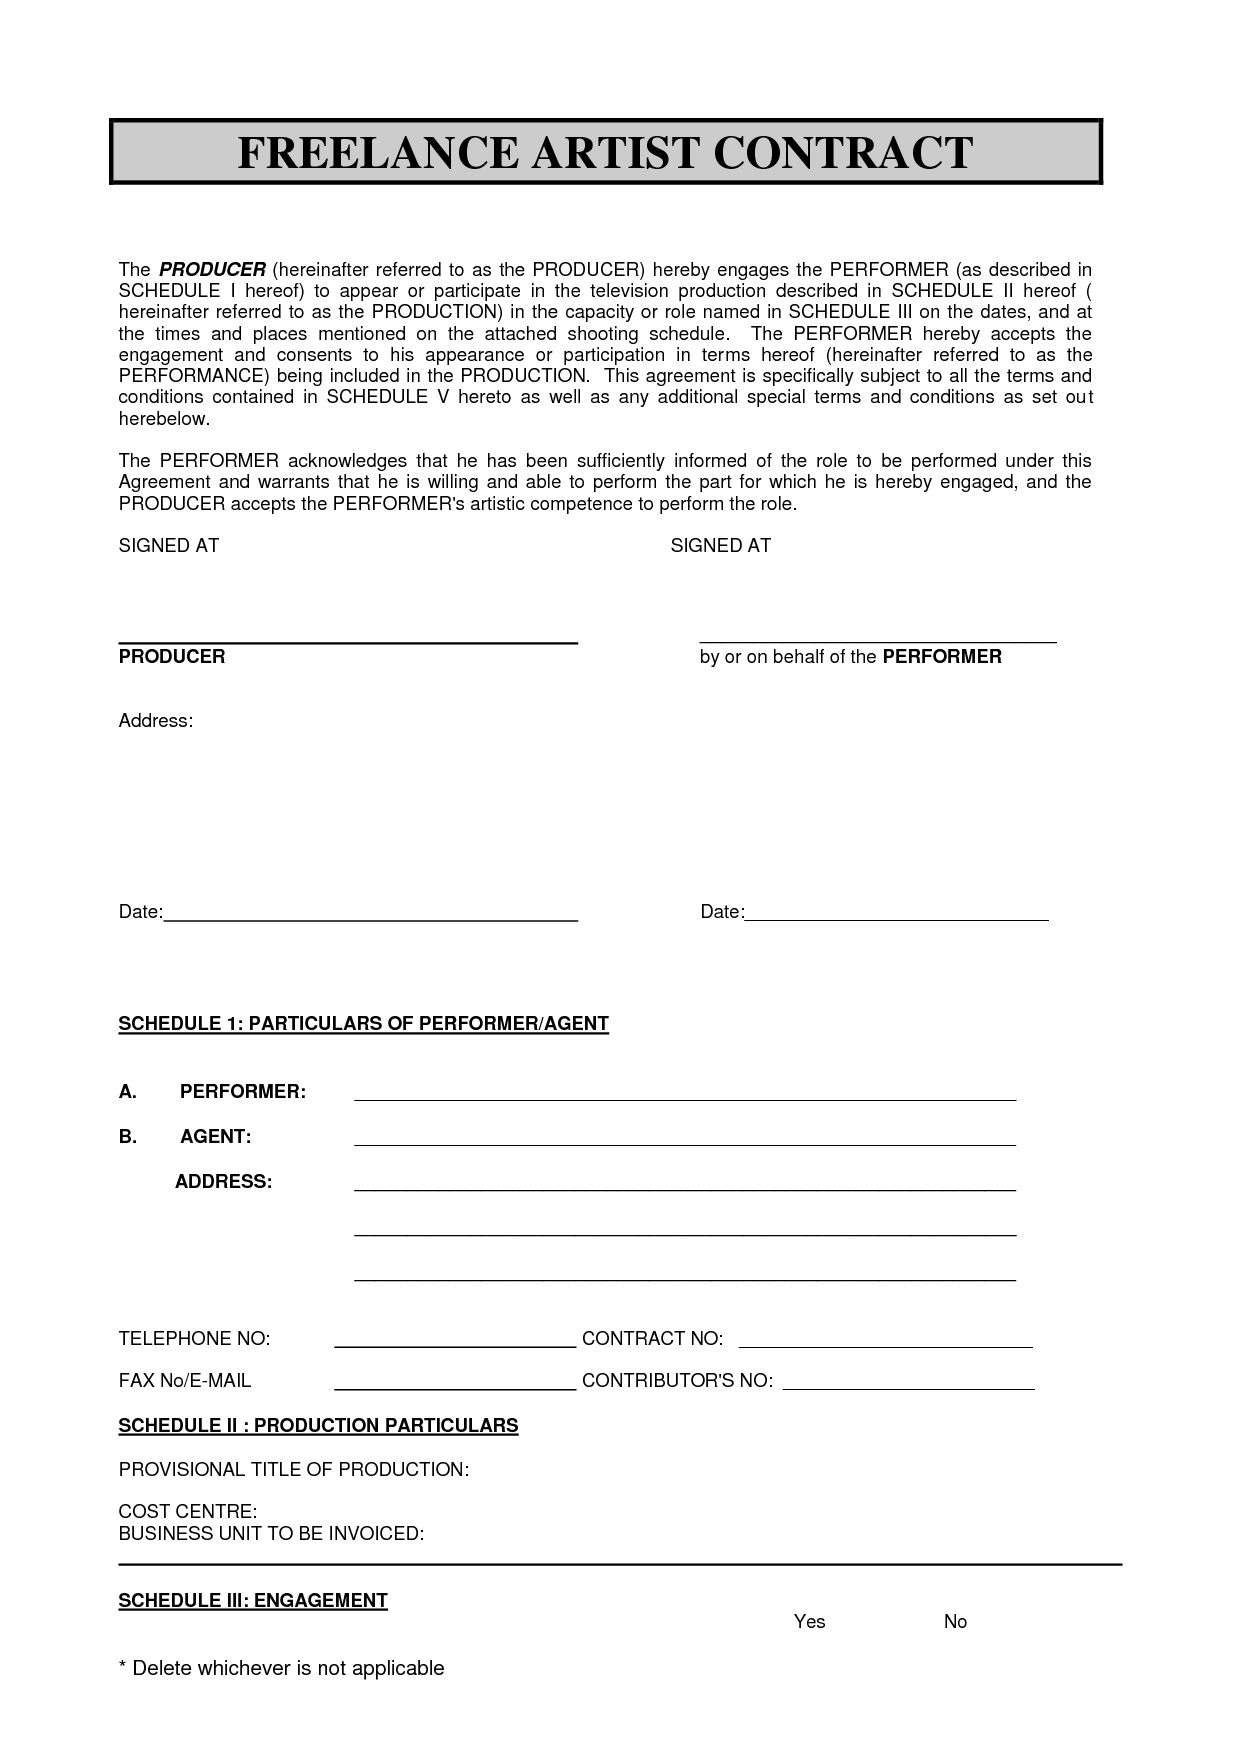 Sabc Contract Pdf  Freelance Artist Contract By Sdsdfqw